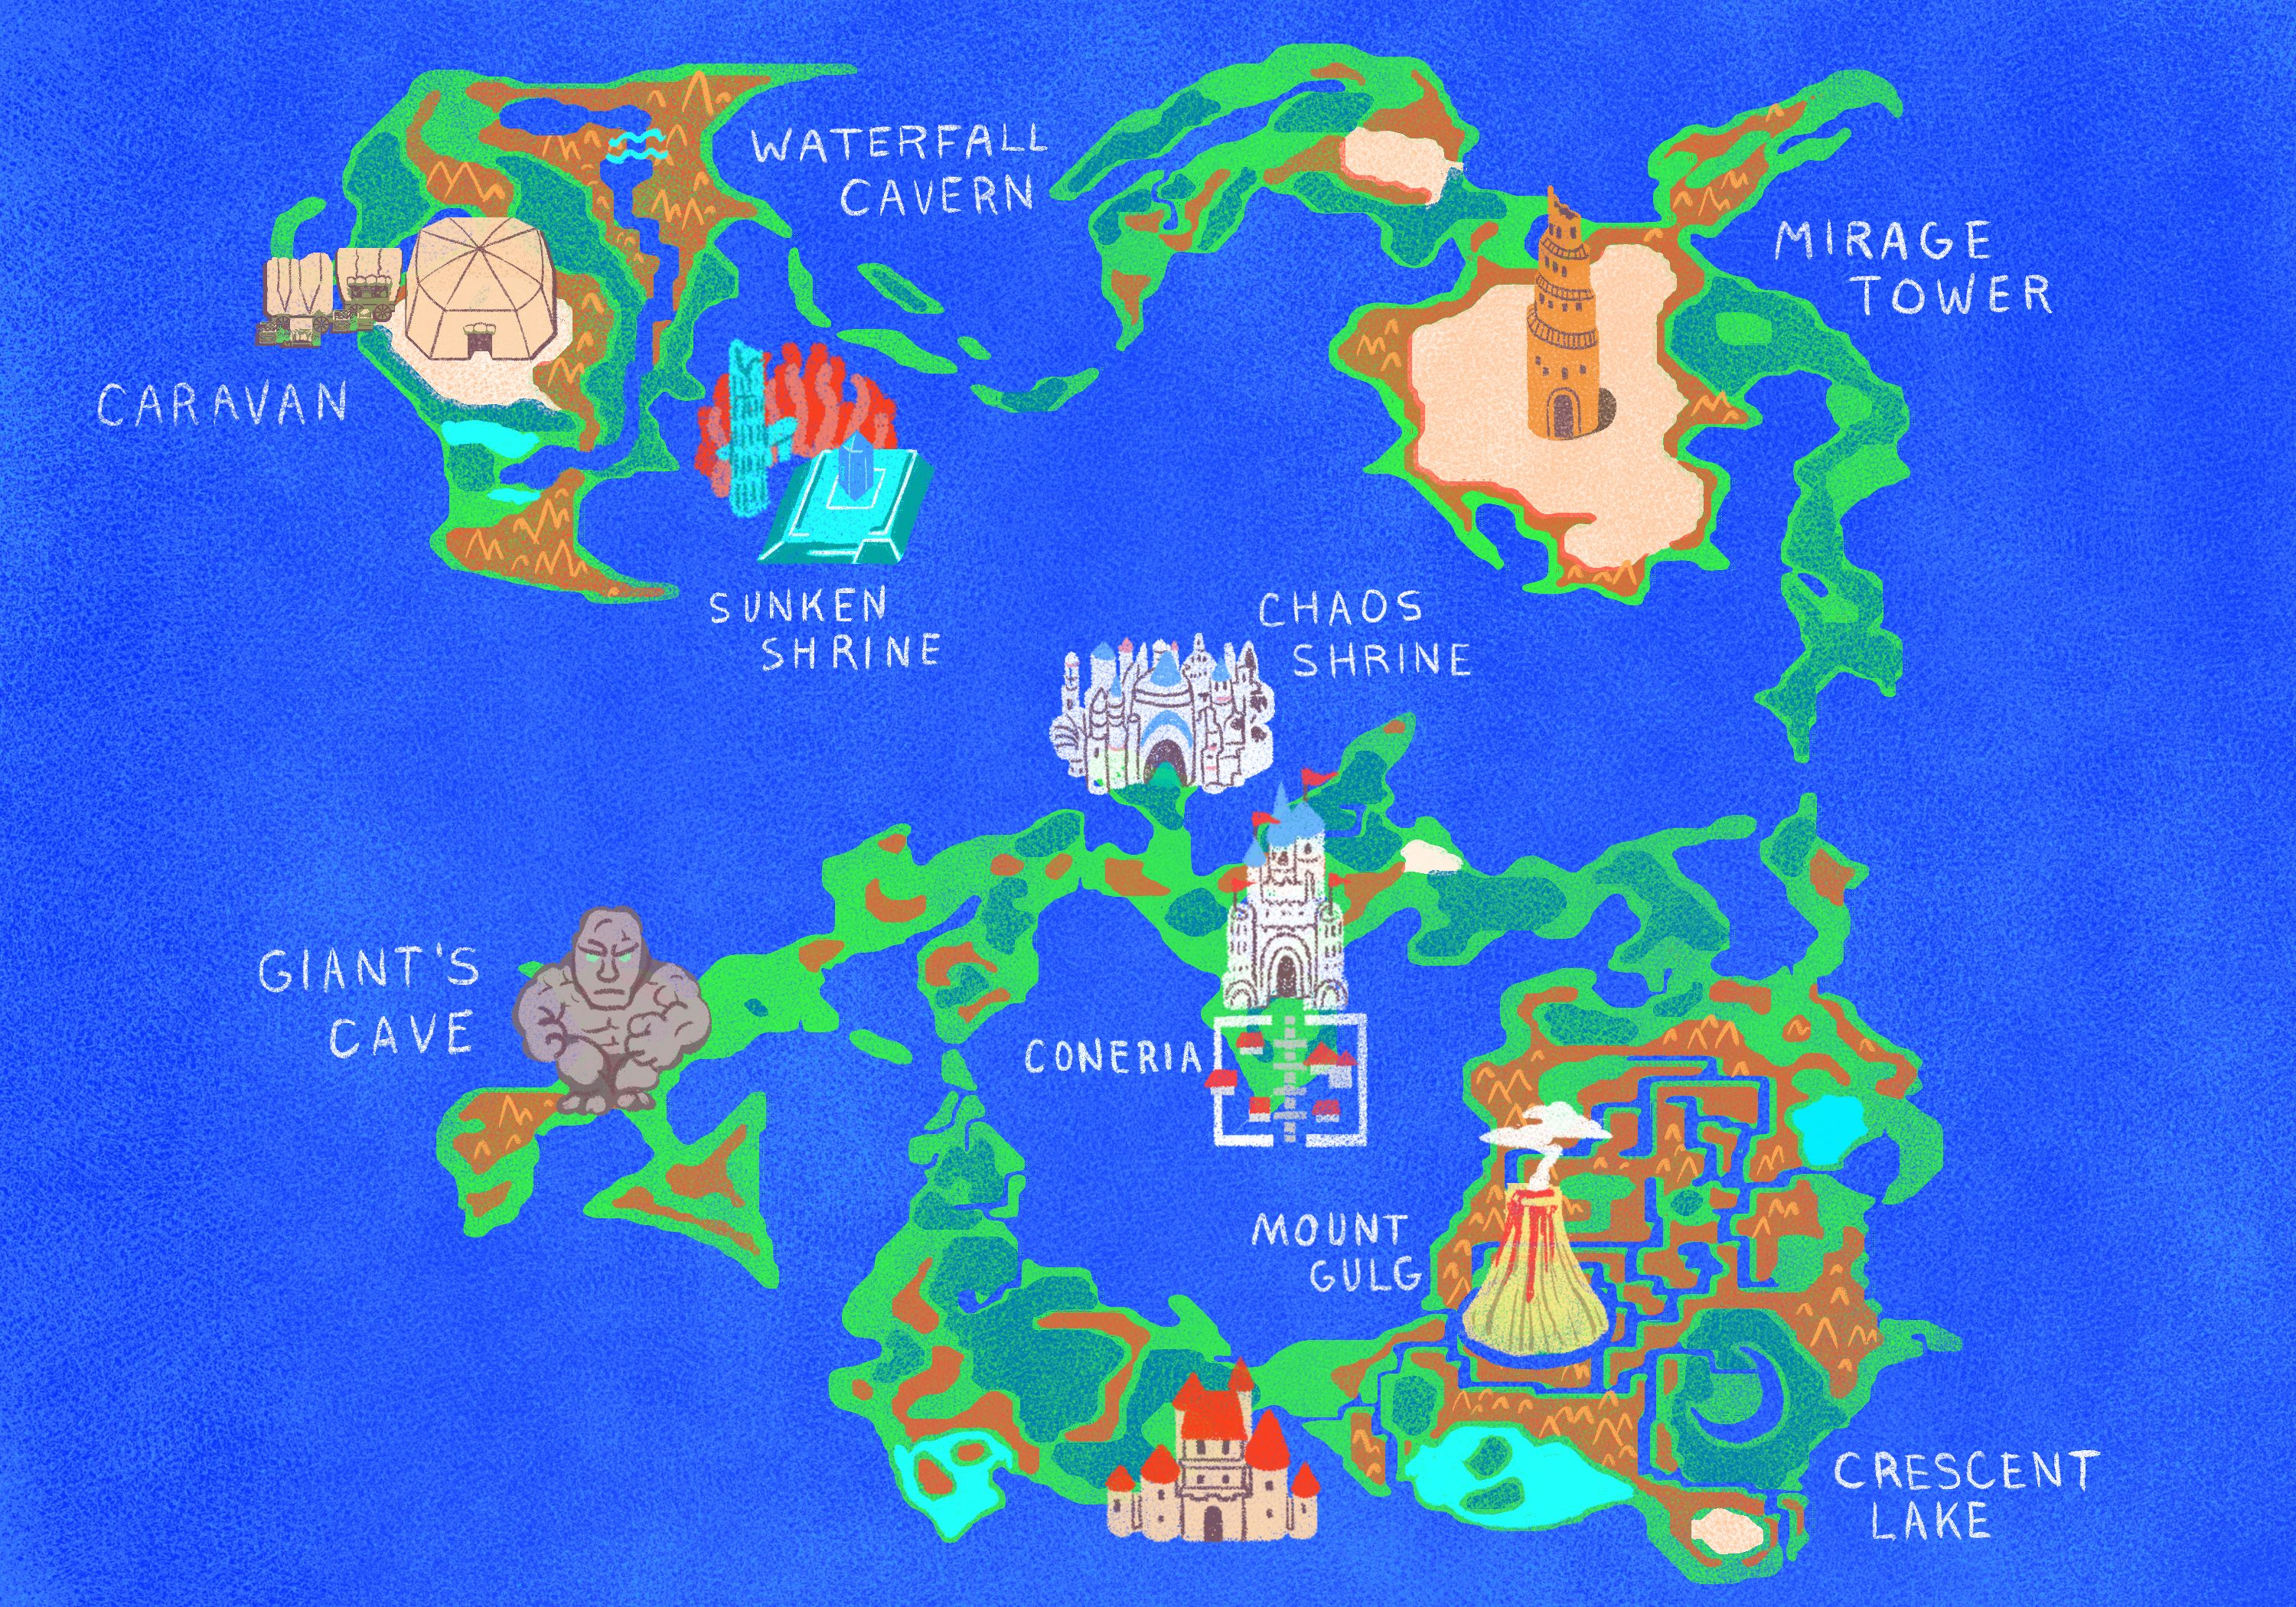 Final Fantasy World Map Final Fantasy map, Angelica Alzona (With images) | Final fantasy